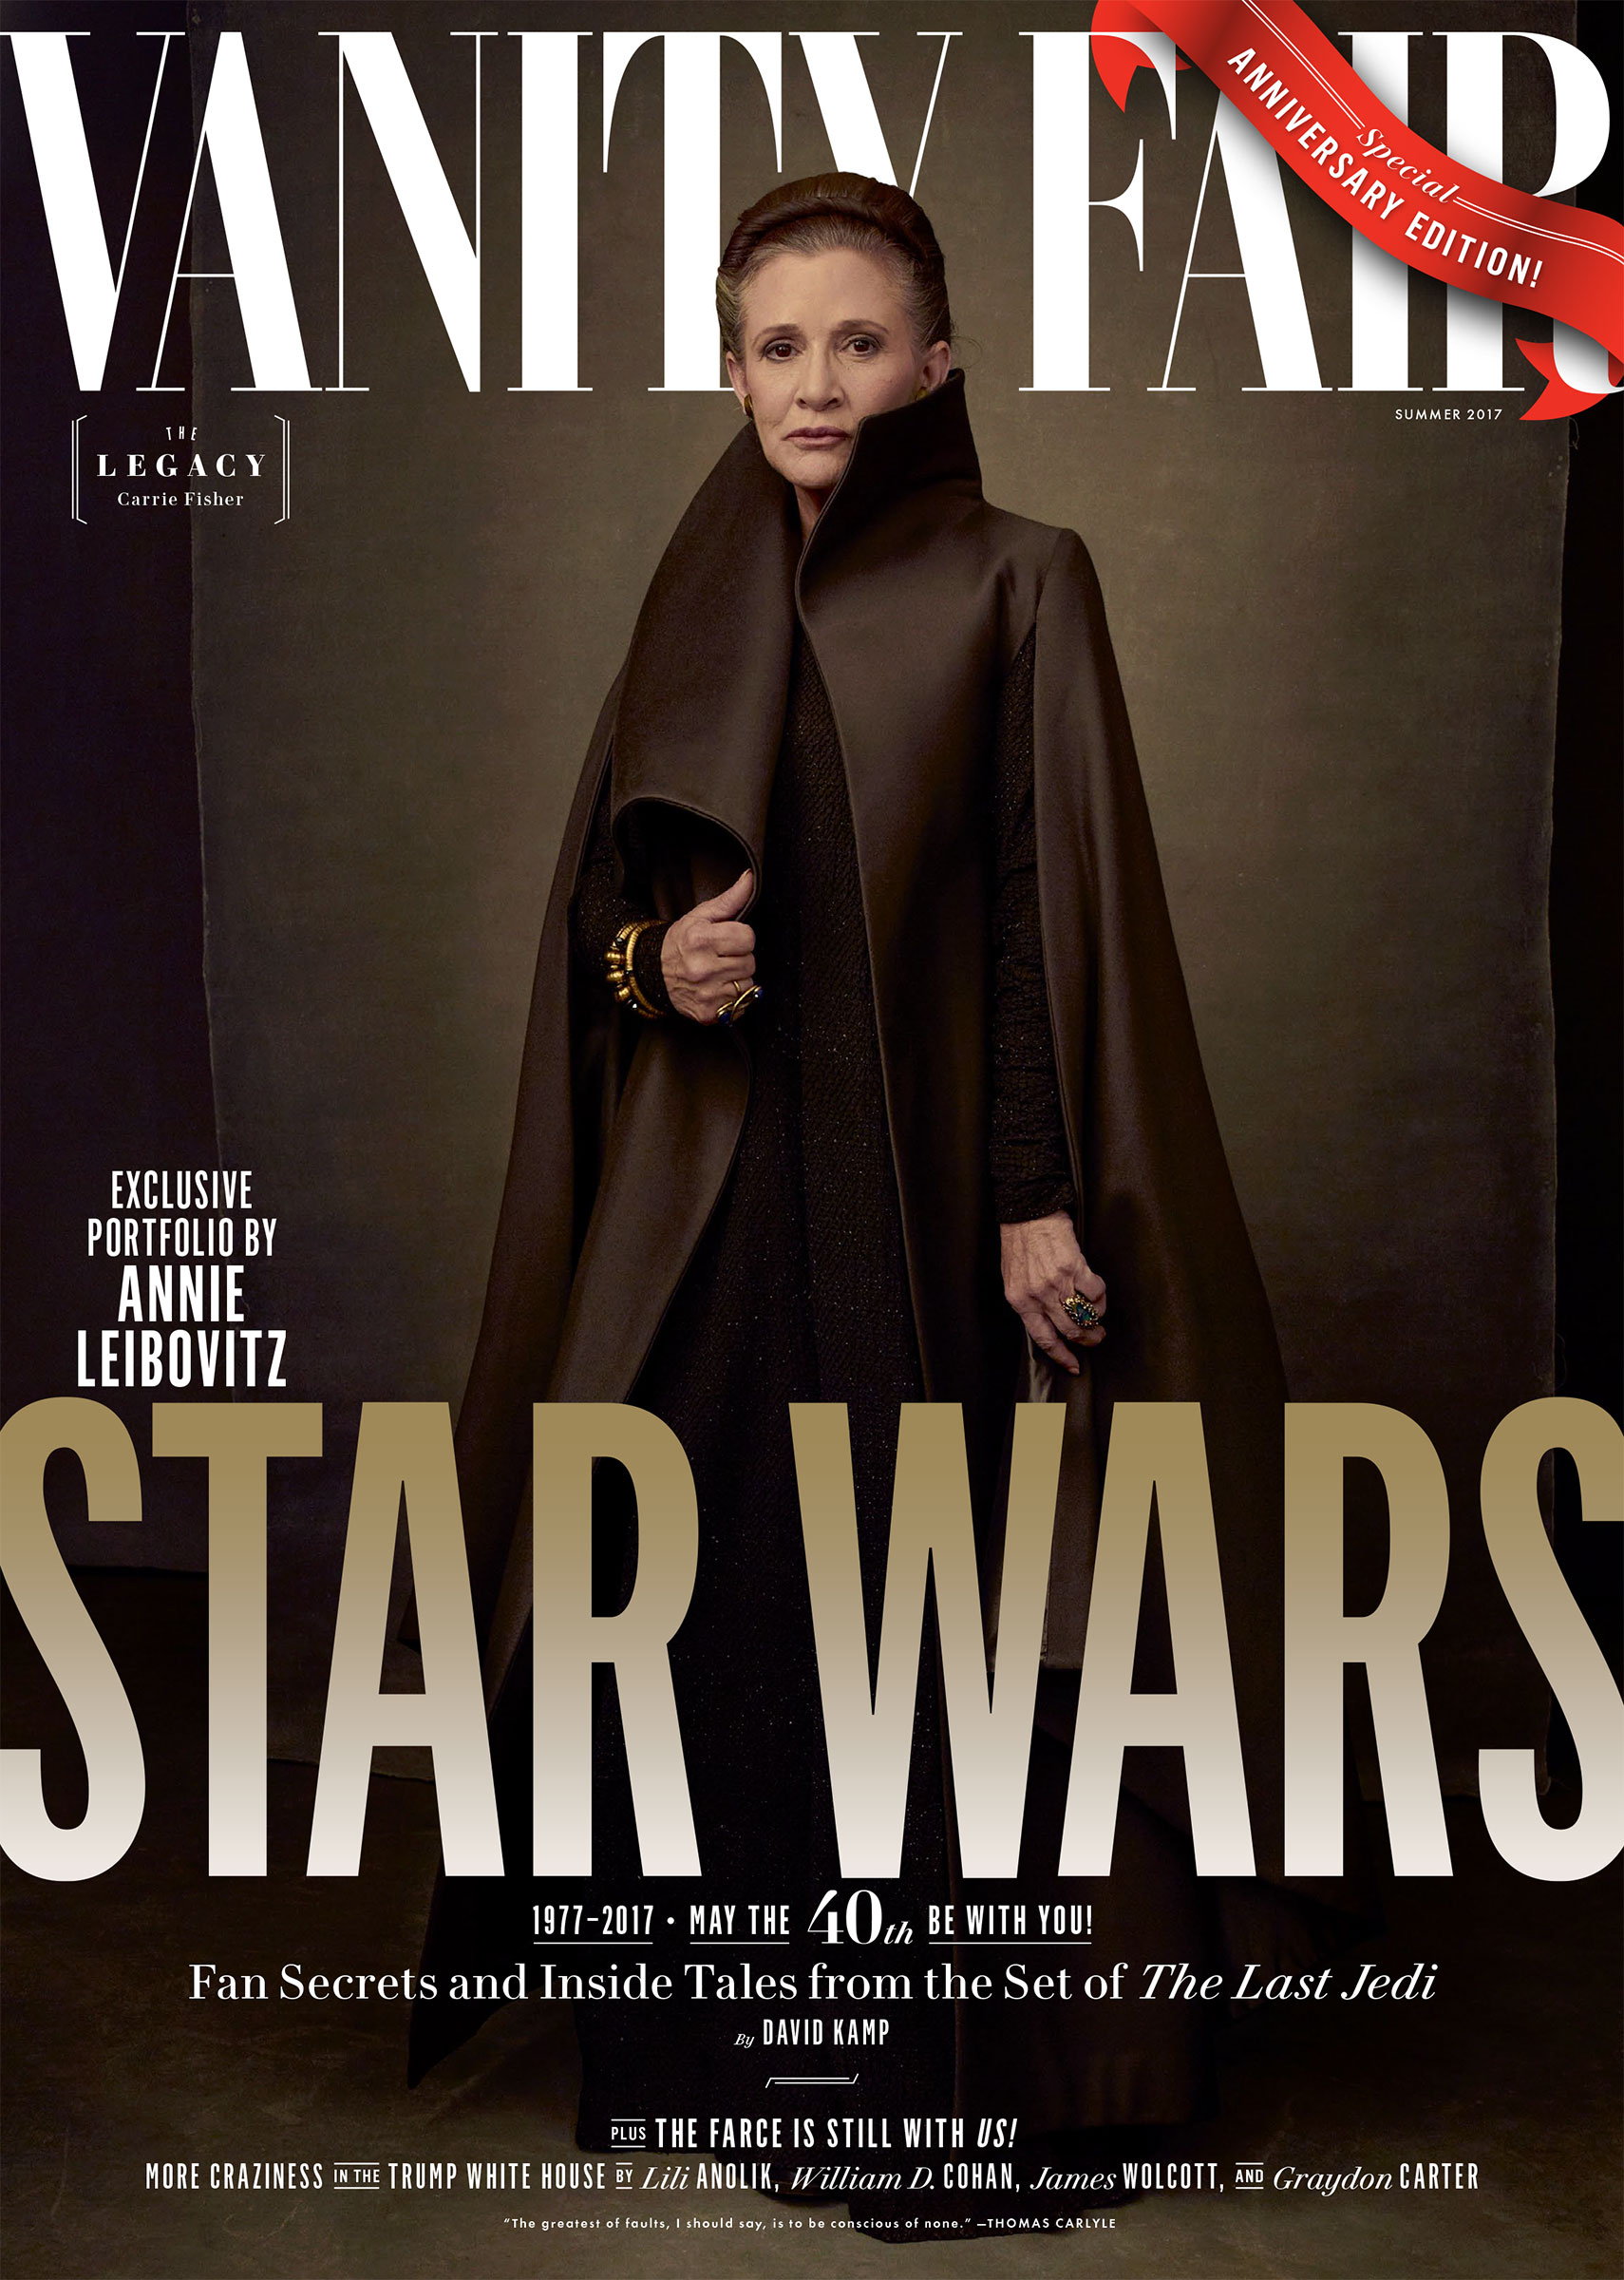 Vanity_Fair_Star_Wars_Leibovitz_coverA